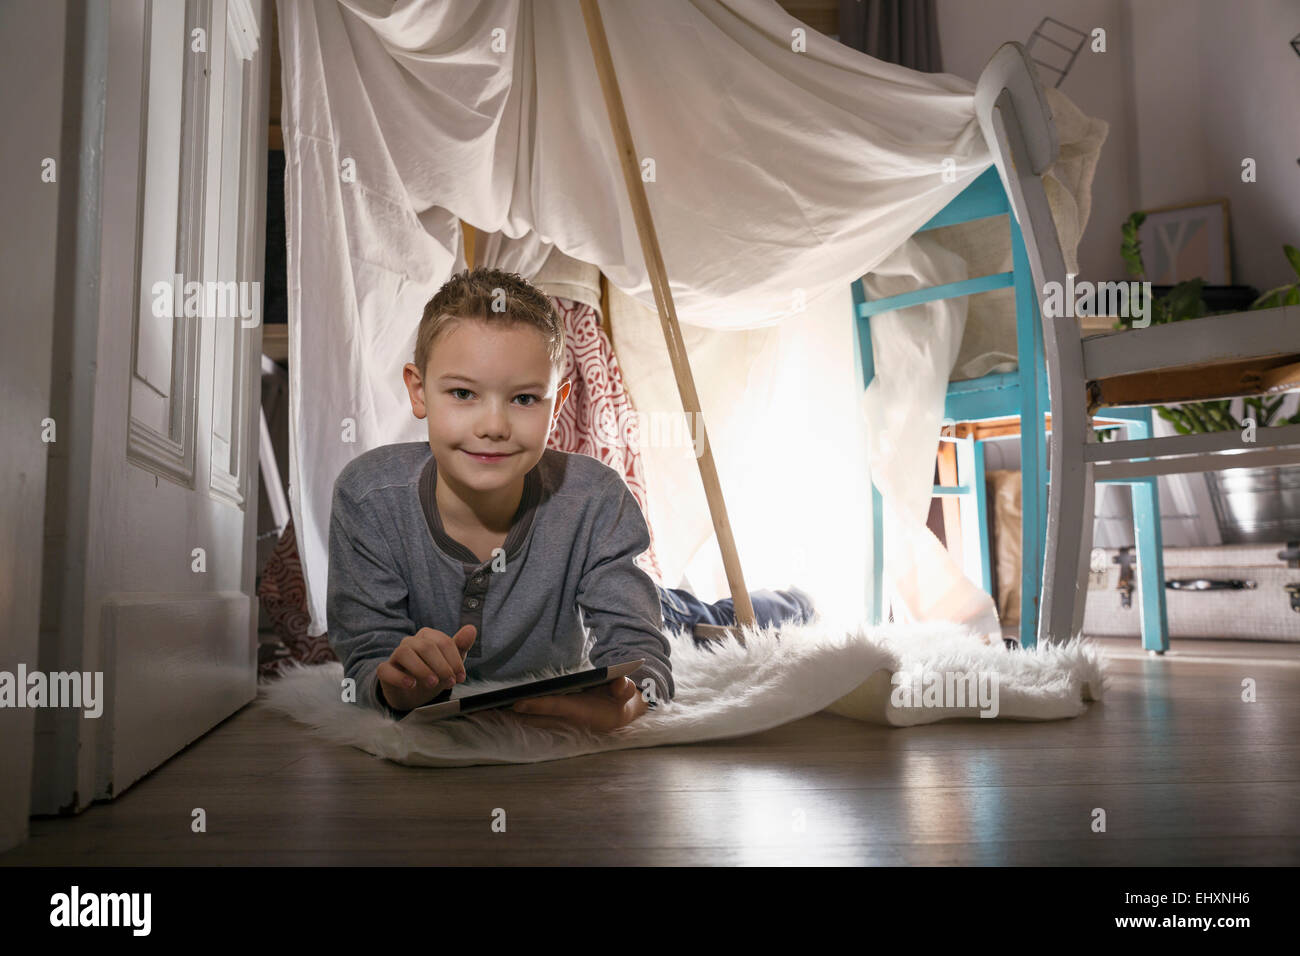 Boy digital tablet lying in self-made tent at home in the evening  sc 1 st  Alamy & Boy digital tablet lying in self-made tent at home in the evening ...